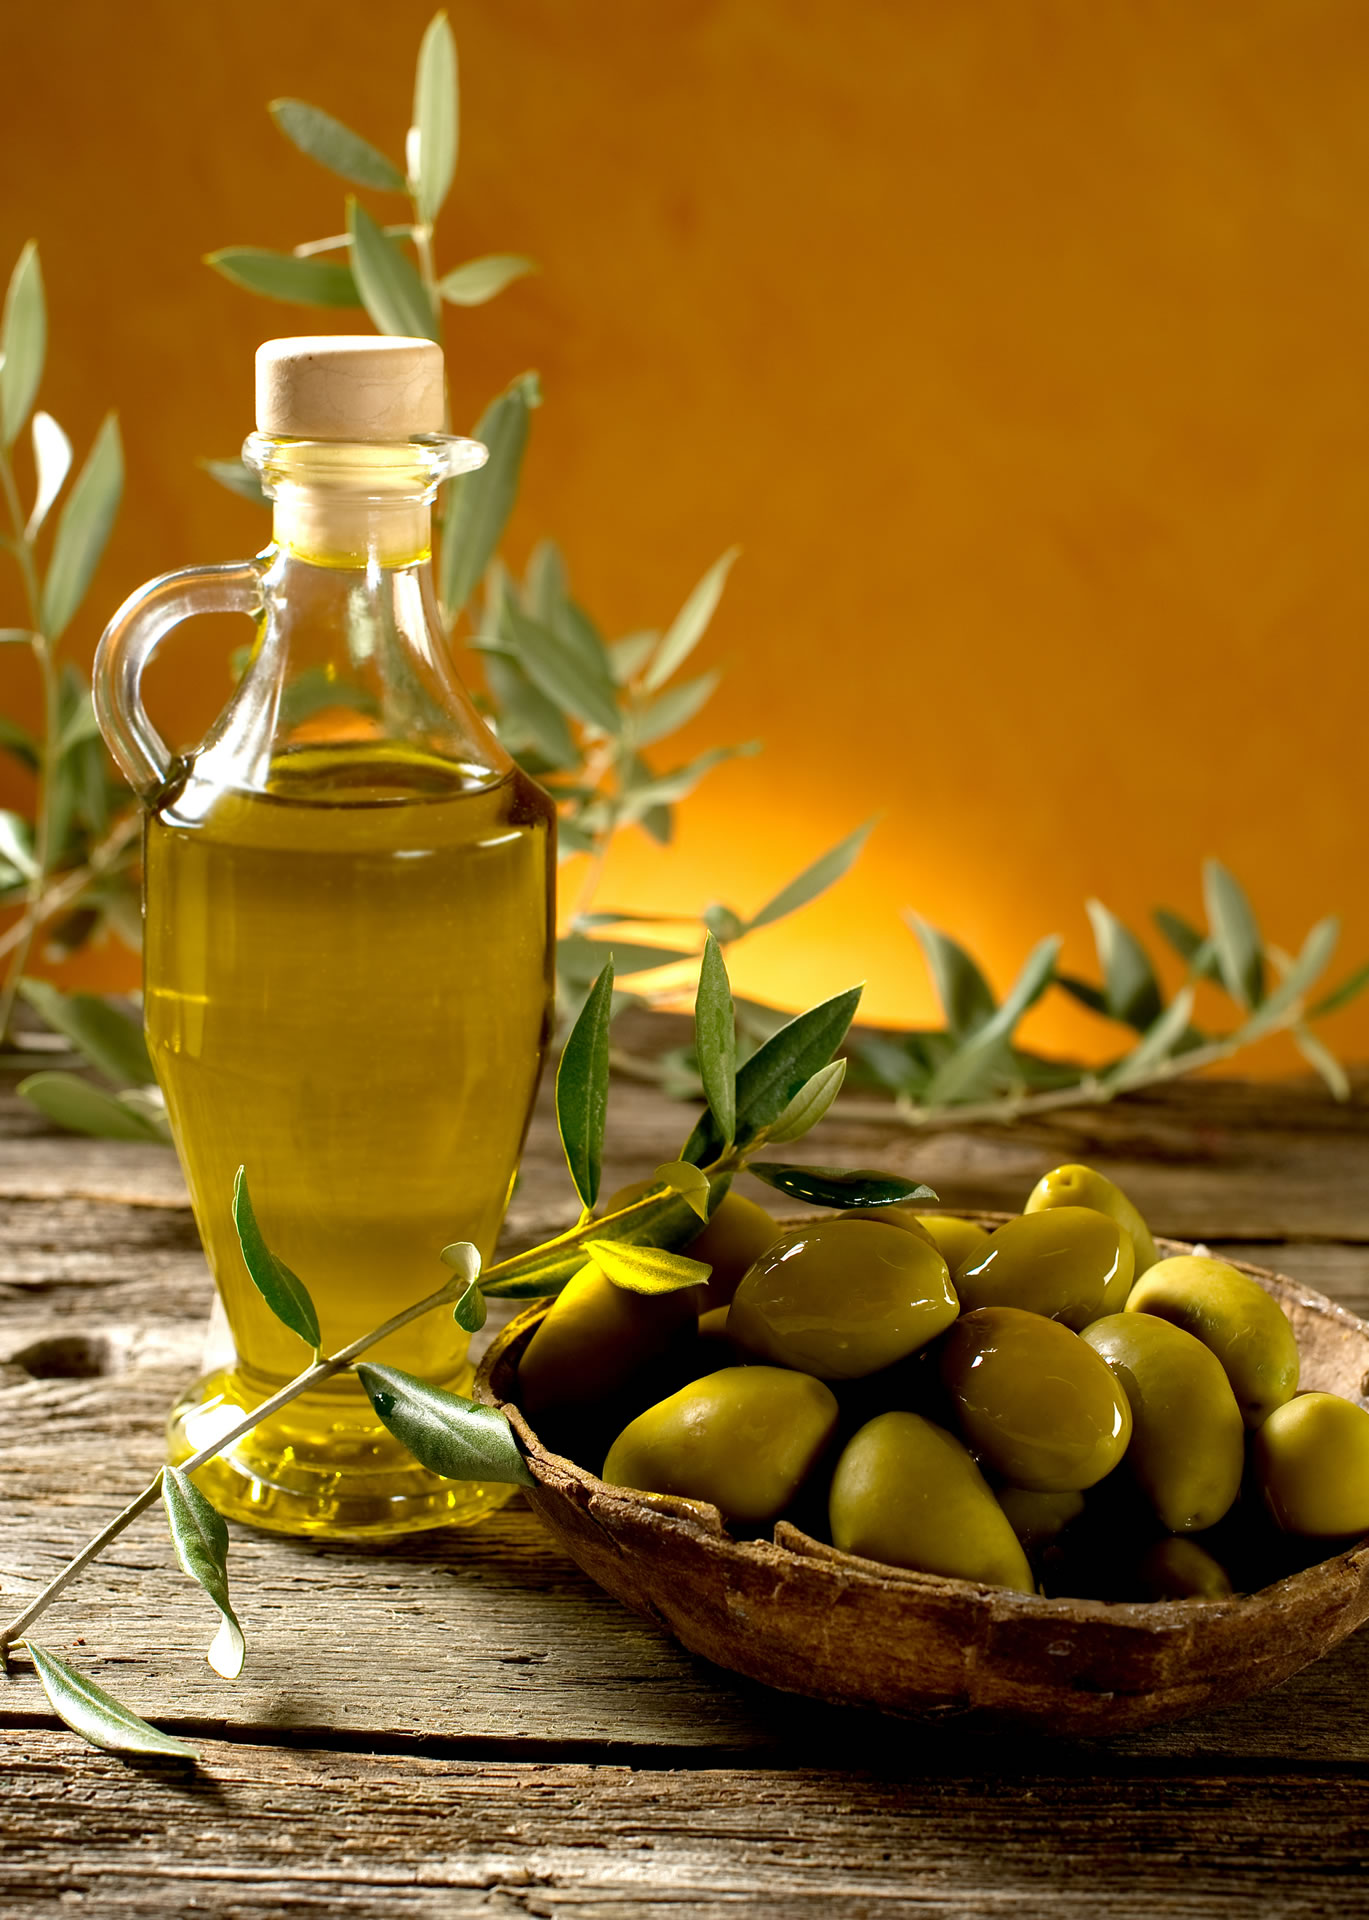 Jaén: Spain's Home to Olive Oil